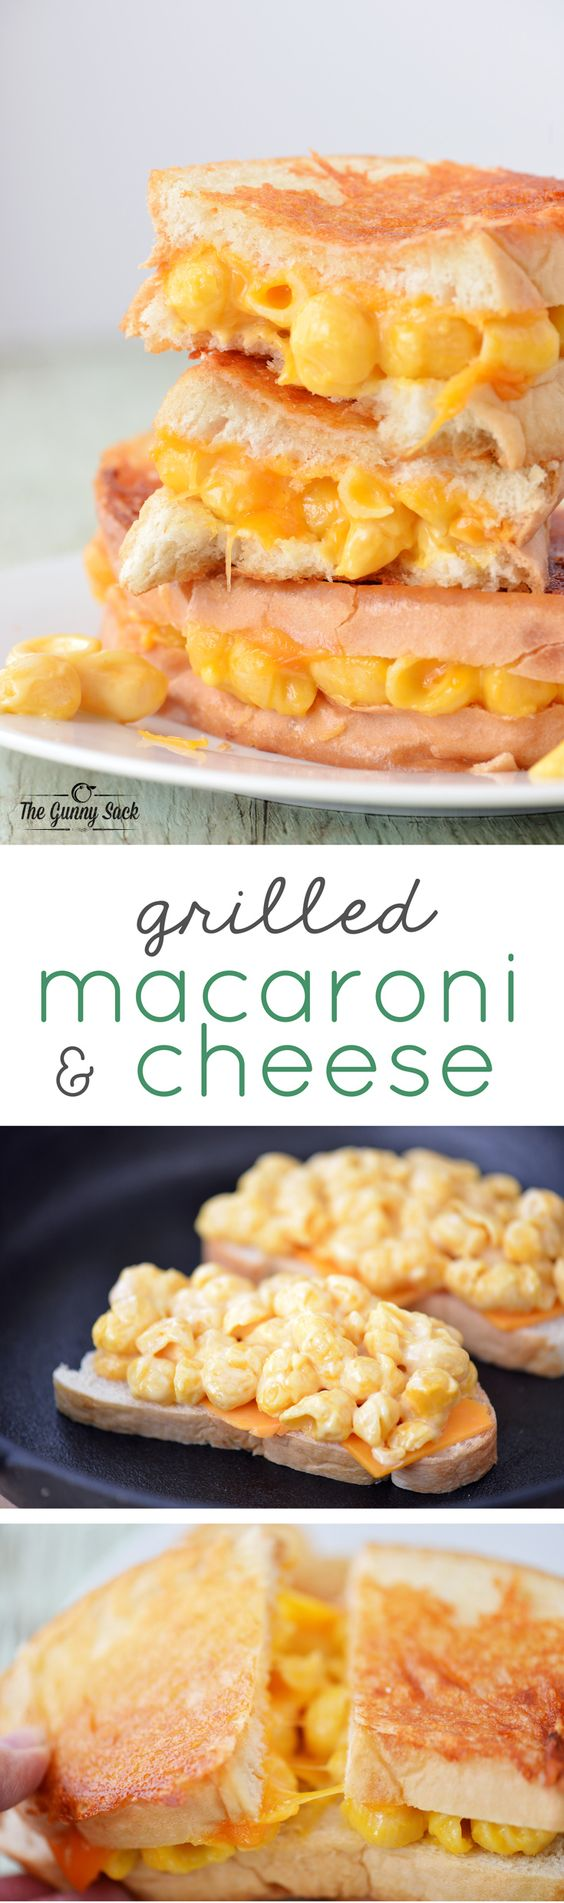 mac grilled mac and cheese tomato soups recipe mac cheese grilled ...